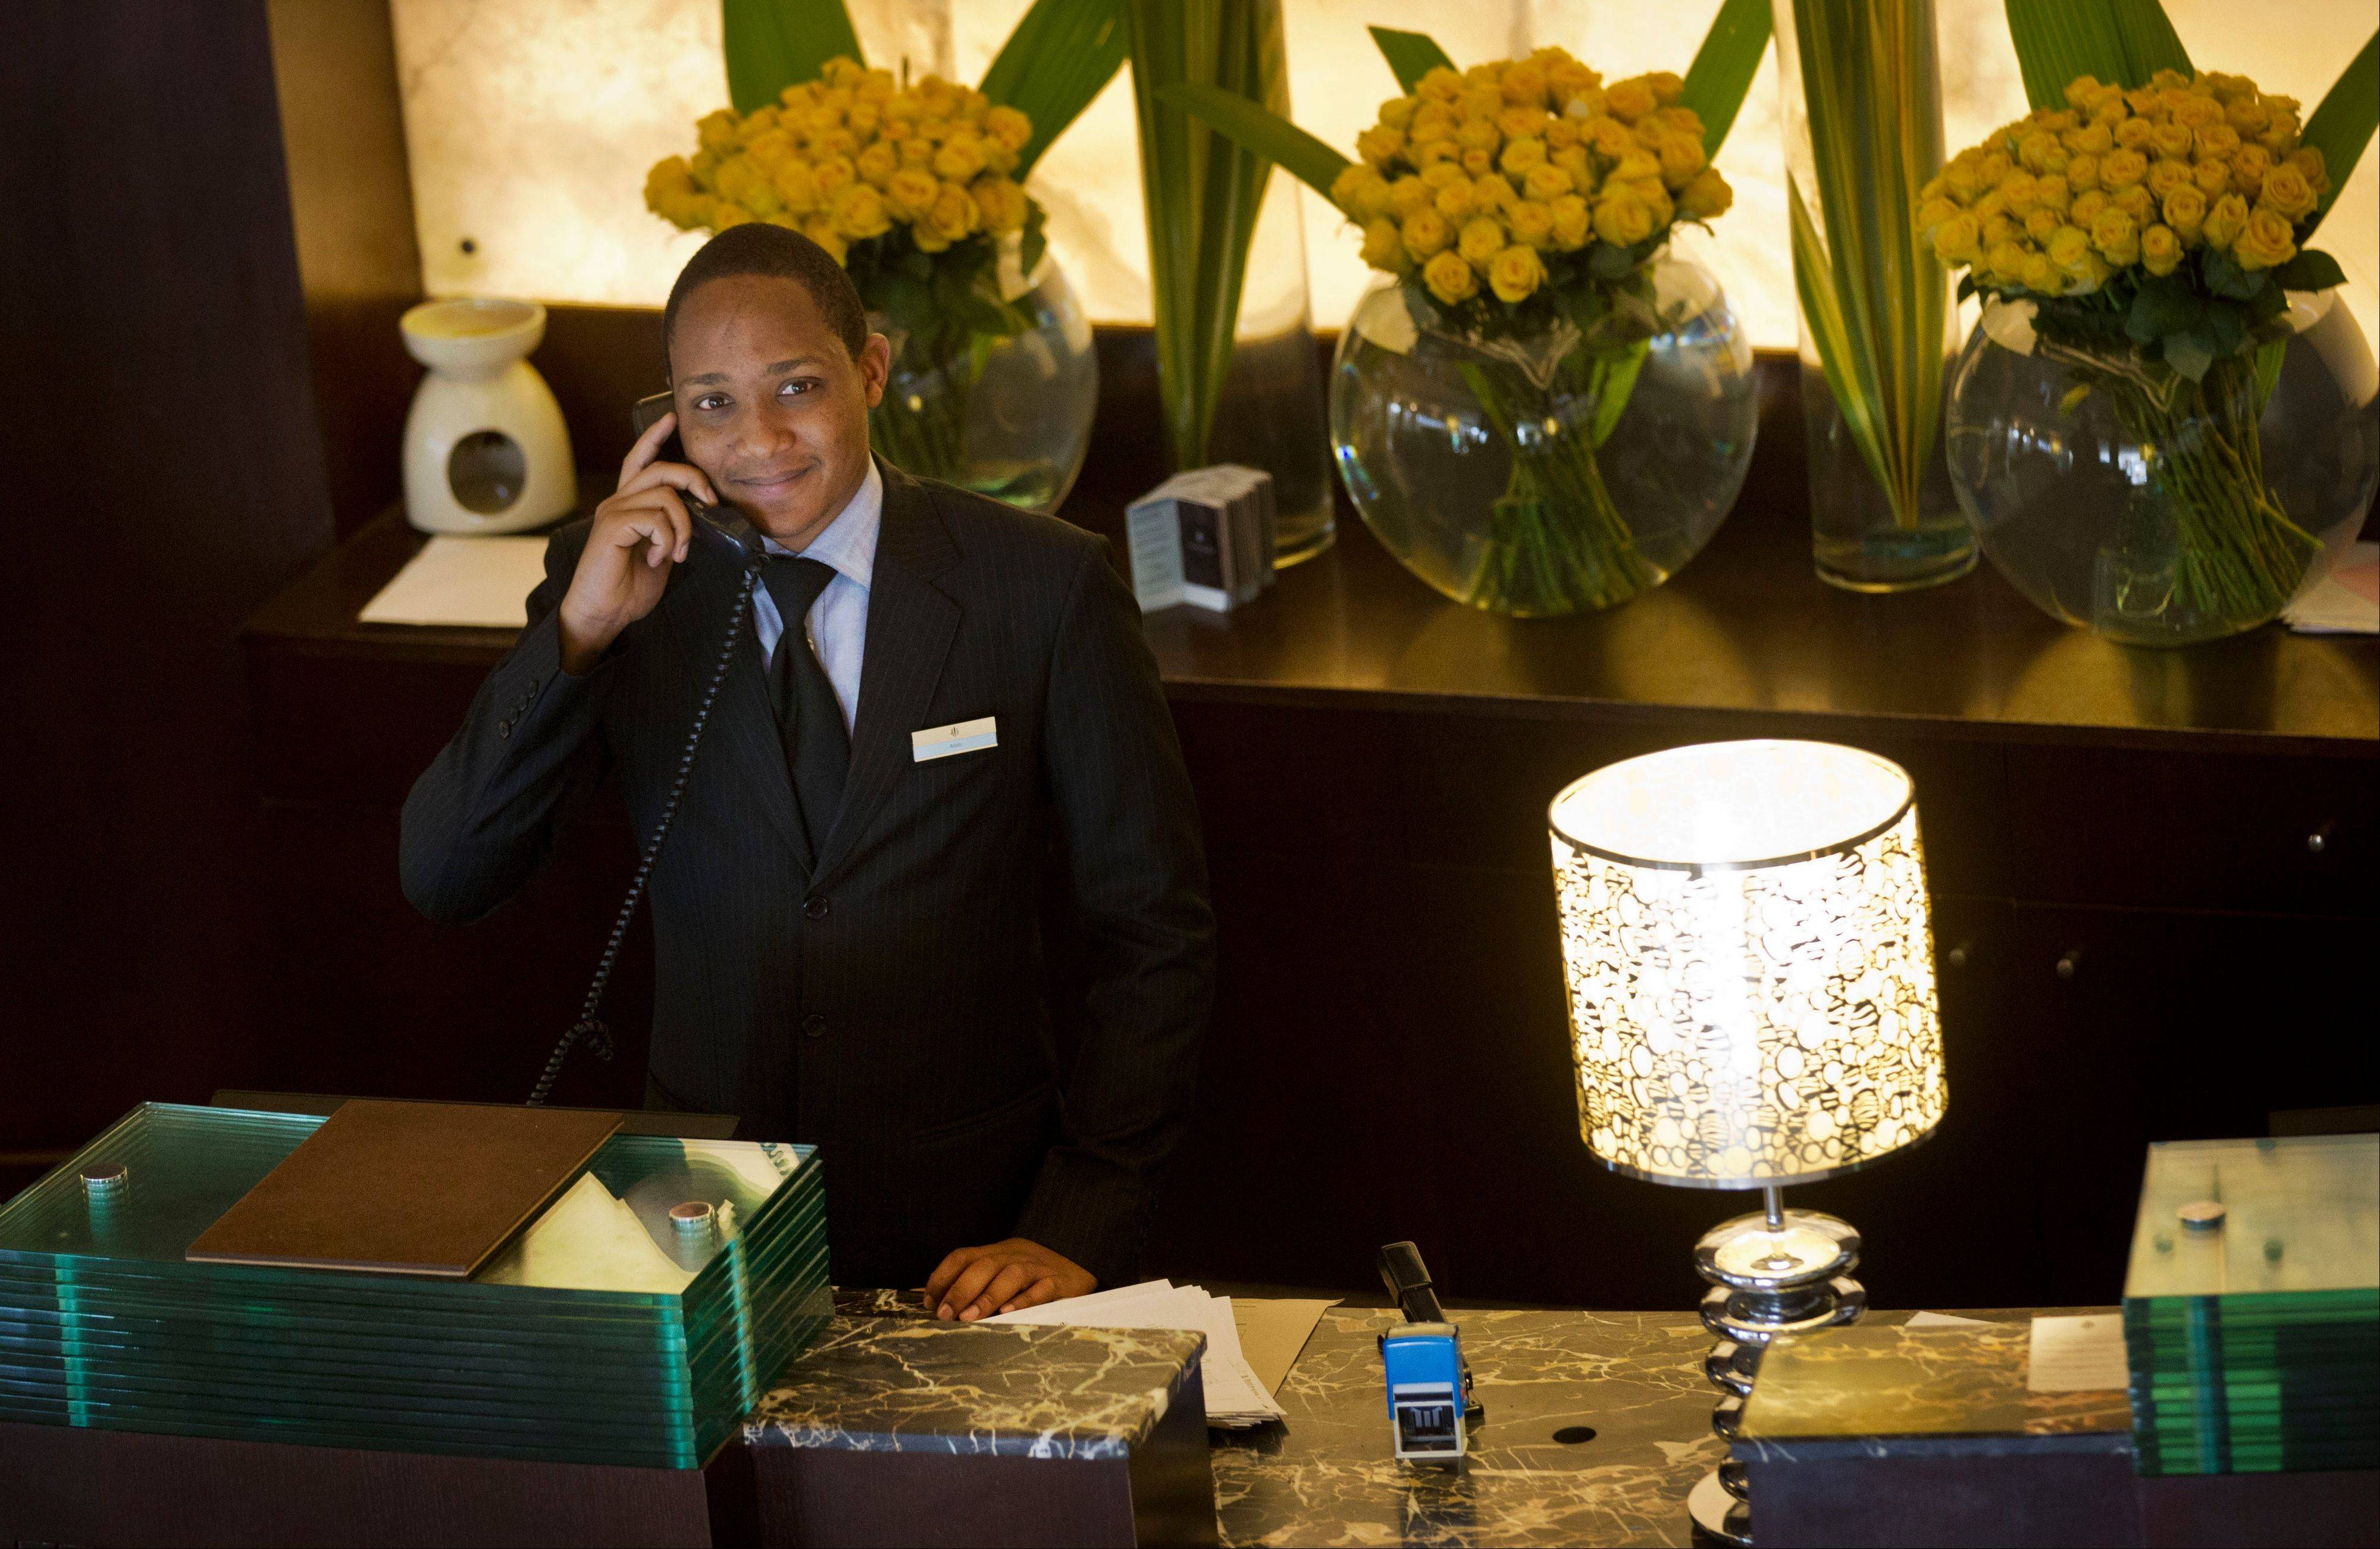 A receptionist takes a call at the front desk of the Sankara Nairobi hotel in Nairobi, Kenya. International hotel developers are planning nearly 40,000 new rooms across Africa in the coming years, the continent�s business travel is increasing, and Africa�s middle class will soon begin leisure travel en masse.